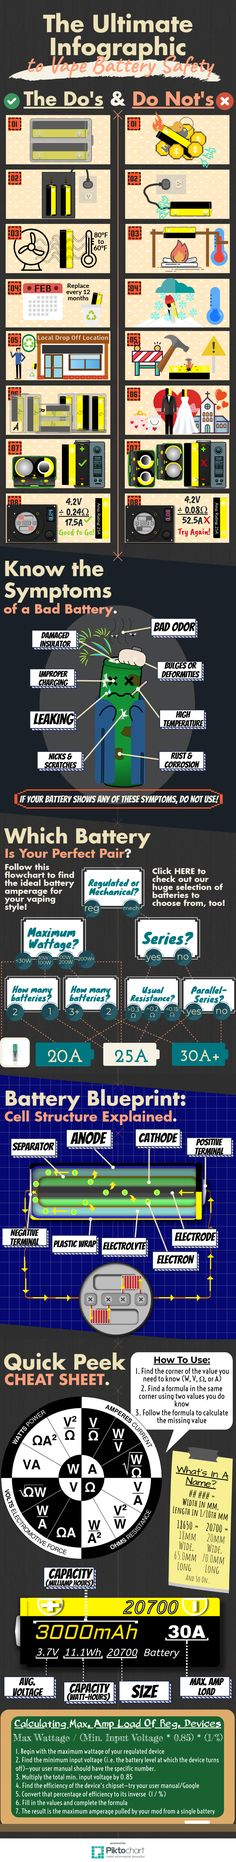 Ever worried about how exactly you need to treat your 18650 and 20700 batteries? Or been curious about how batteries work? And you just hate reading! You're in luck—this delightful infographic displays everything you need to know about your vape batteries and how to keep them pristine! Vaping, Stuff To Do, Need To Know, Infographics, No Worries, Hate, Electronic Cigarette, Infographic